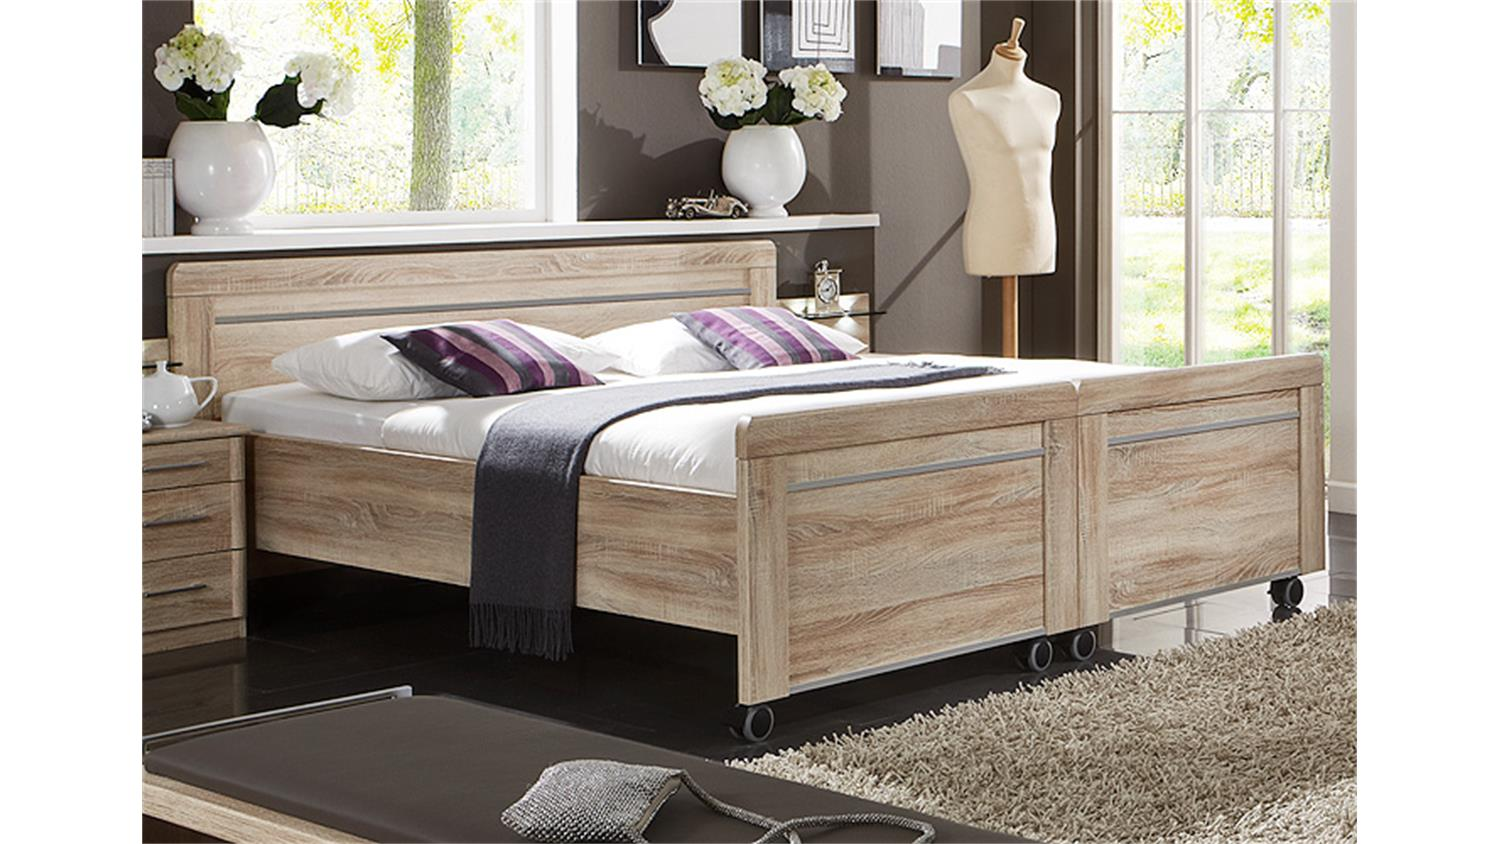 bett auf rollen modernes die neueste innovation der. Black Bedroom Furniture Sets. Home Design Ideas